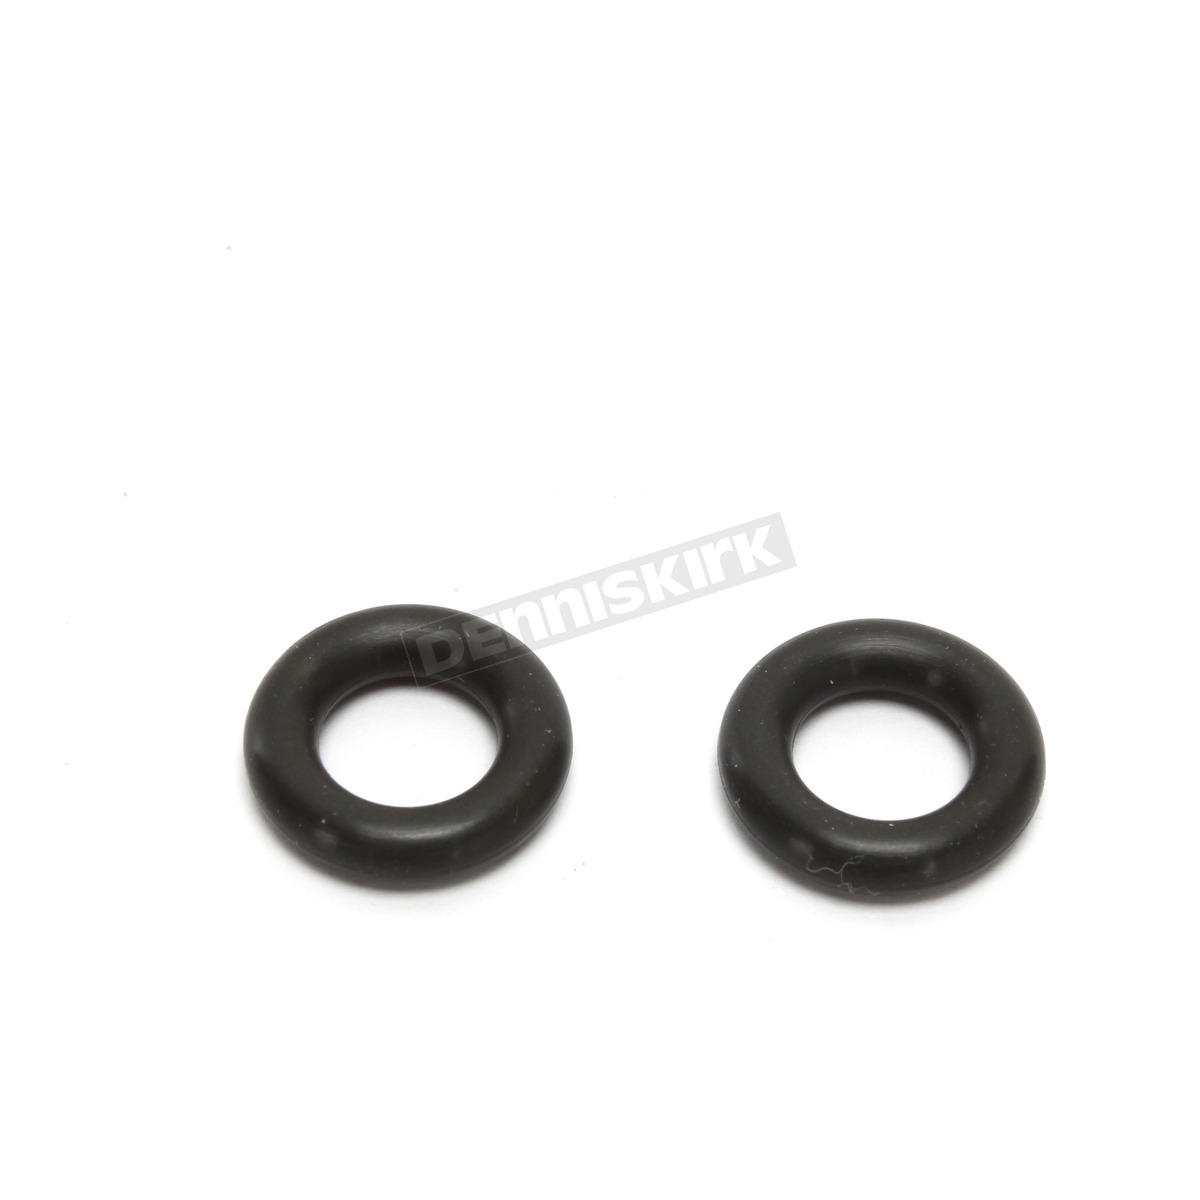 Fuel Injector O-Ring Seal - C10206